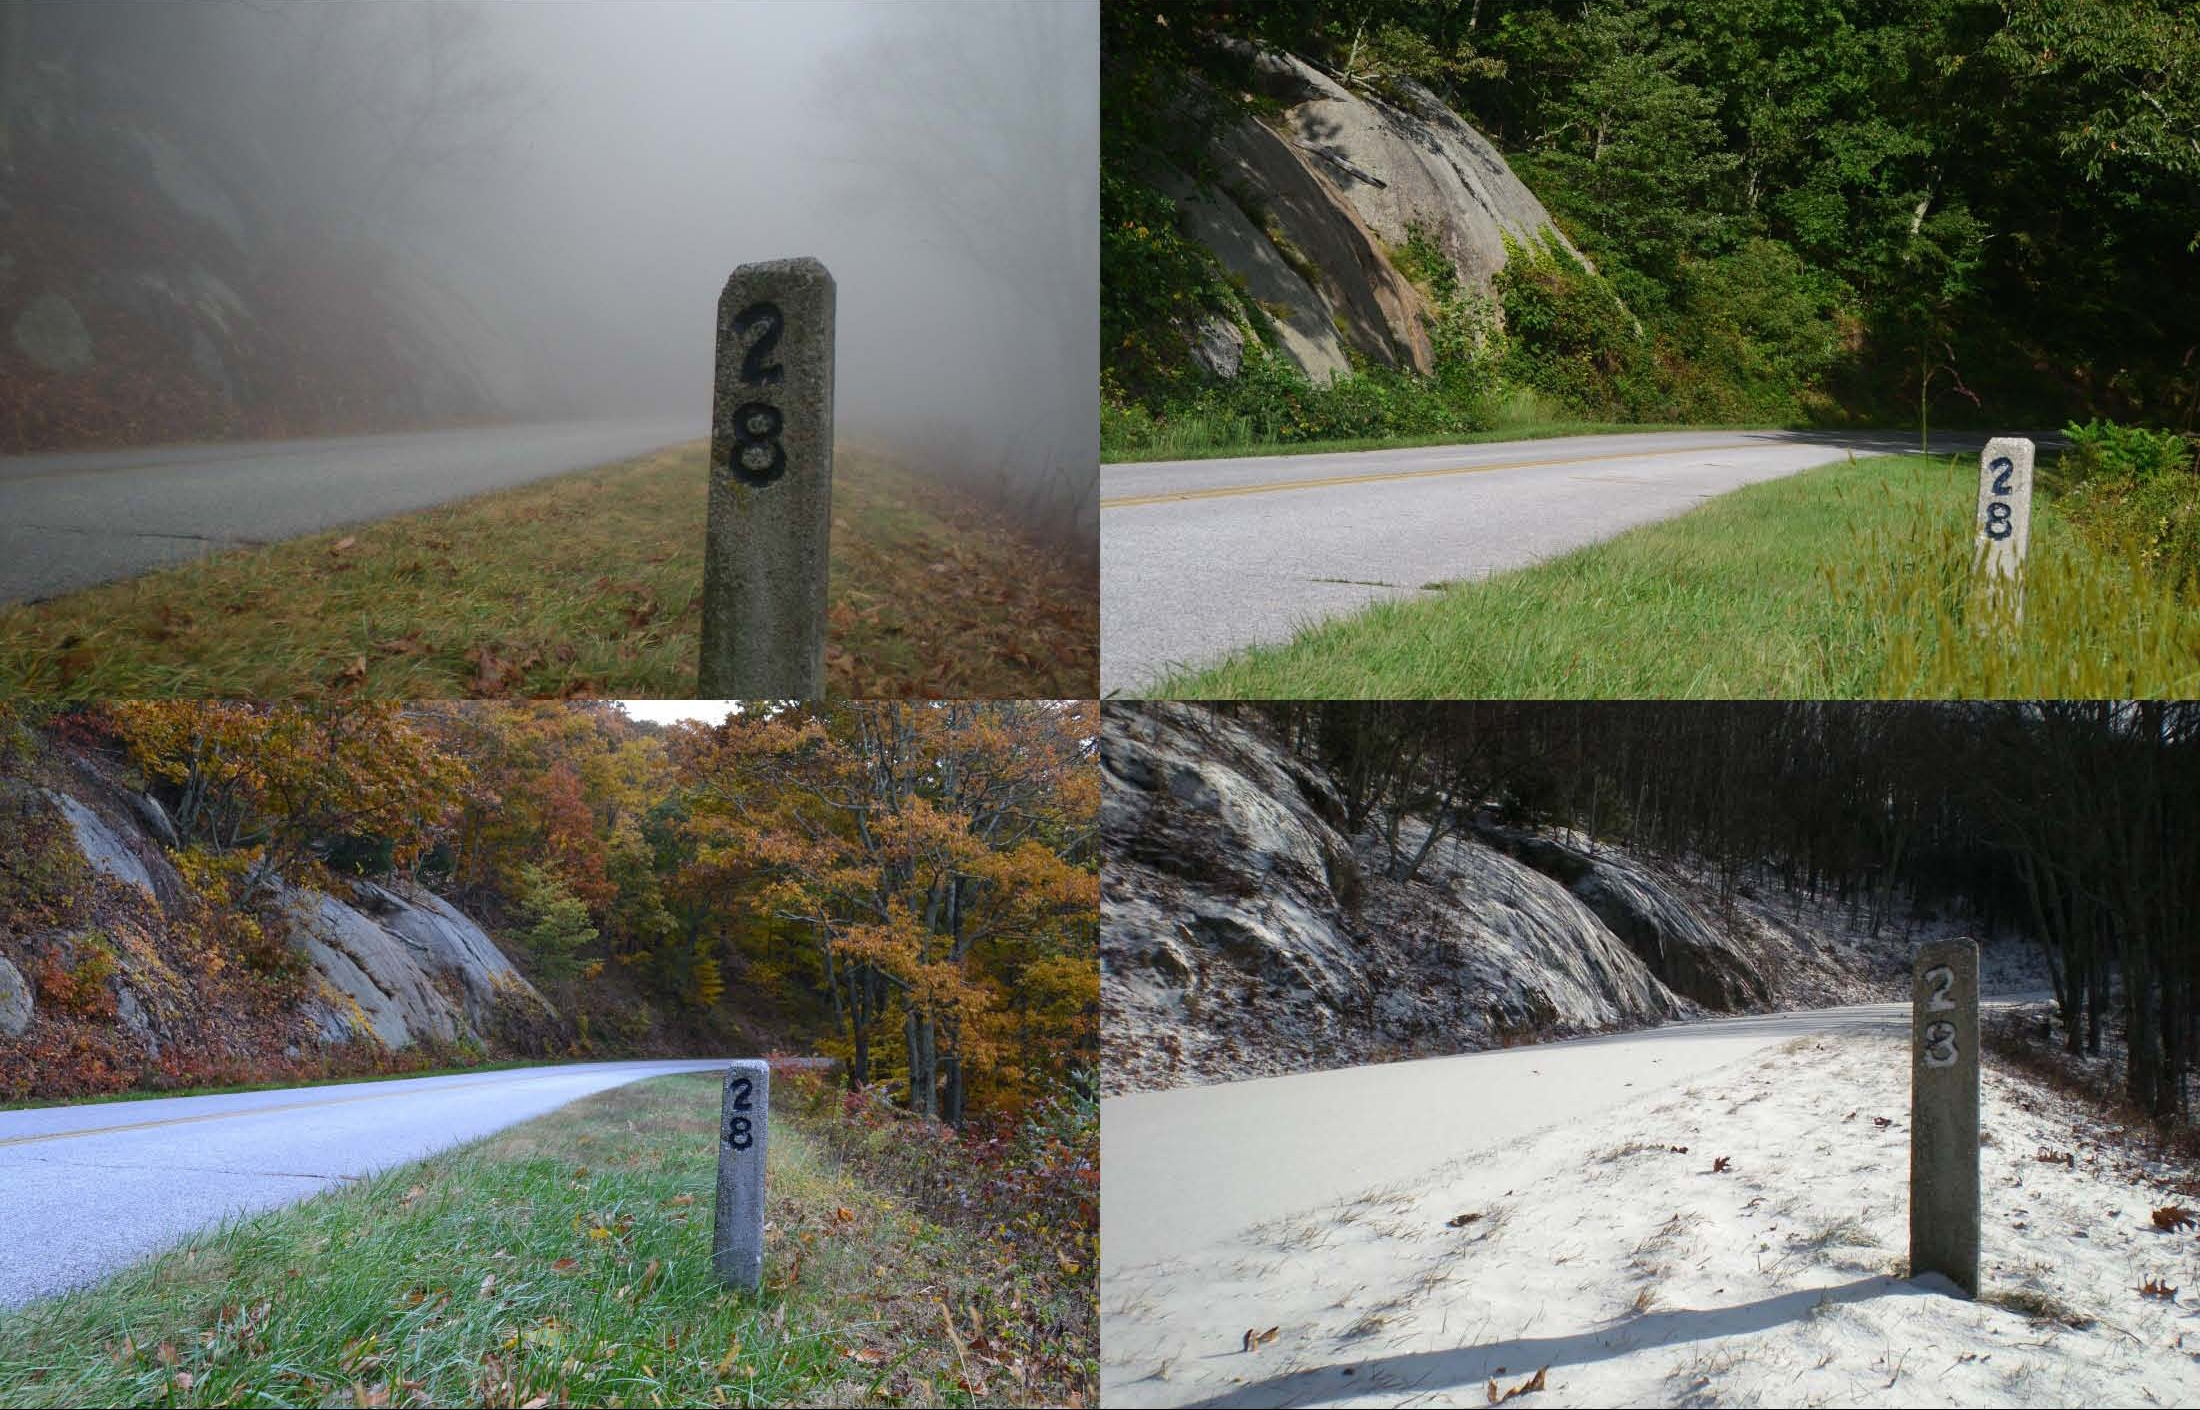 Parkway mile post 28 in the springtime fog, summer, fall and winter